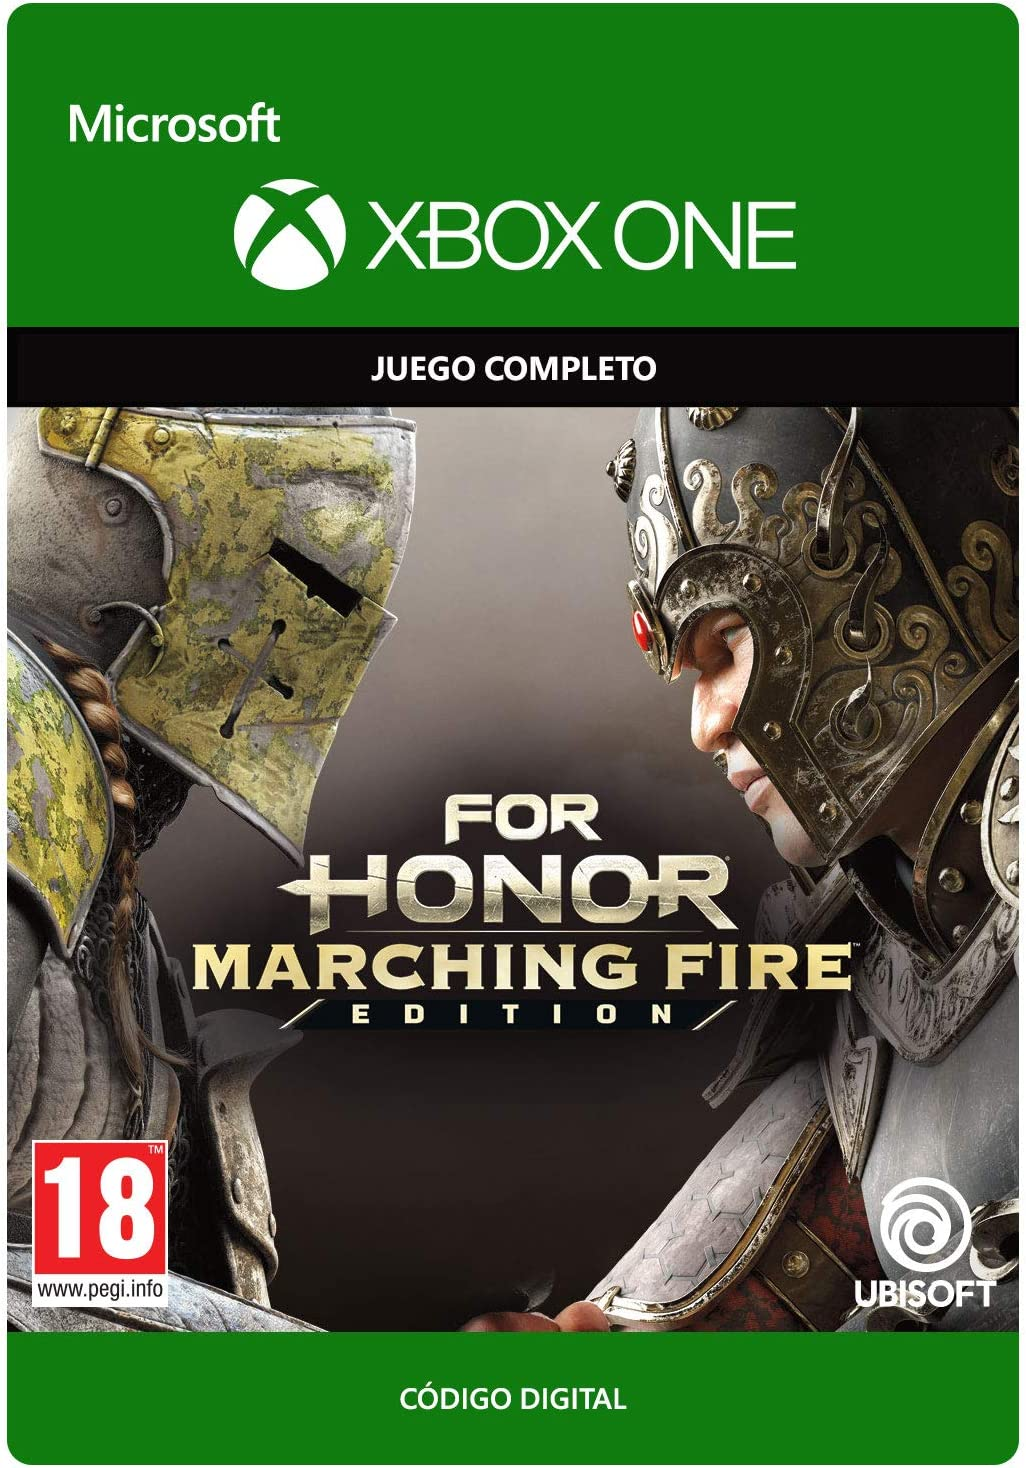 For Honor: Marching Fire Edition | Xbox One - Download Code ...